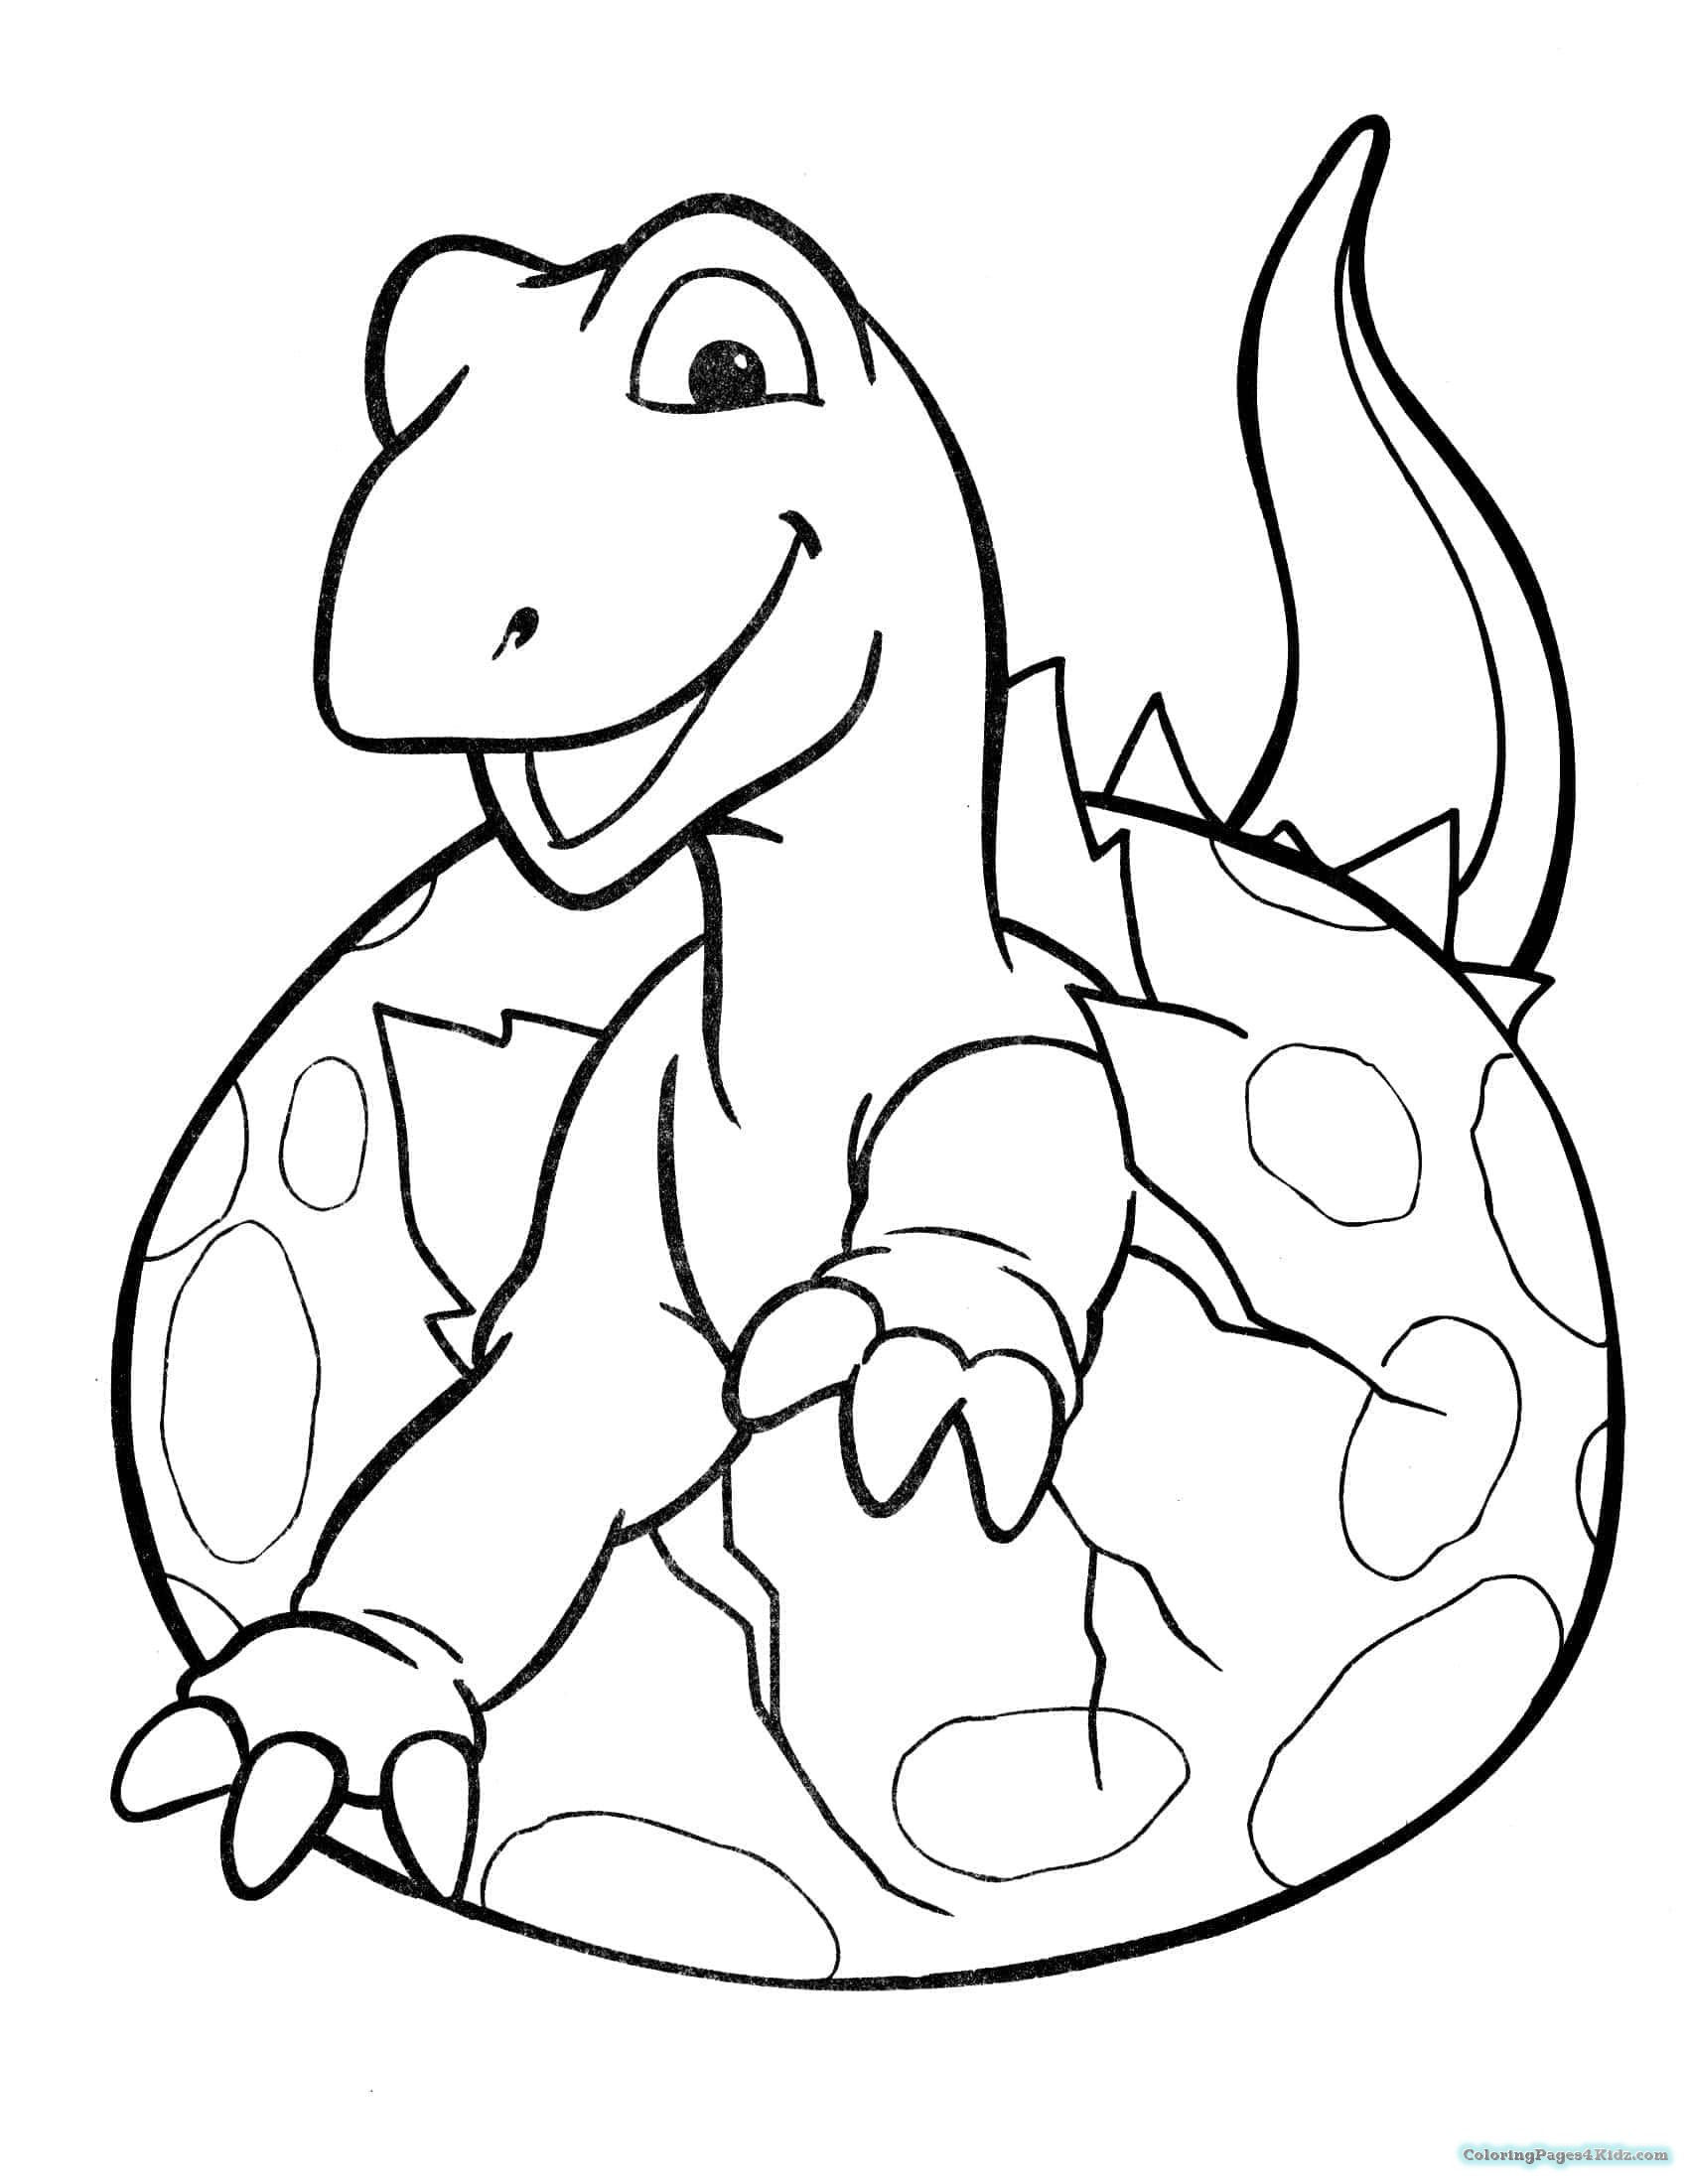 Free Coloring Sheets For Kids Crayola  Free Crayola Hello Kitty Coloring Pages Free